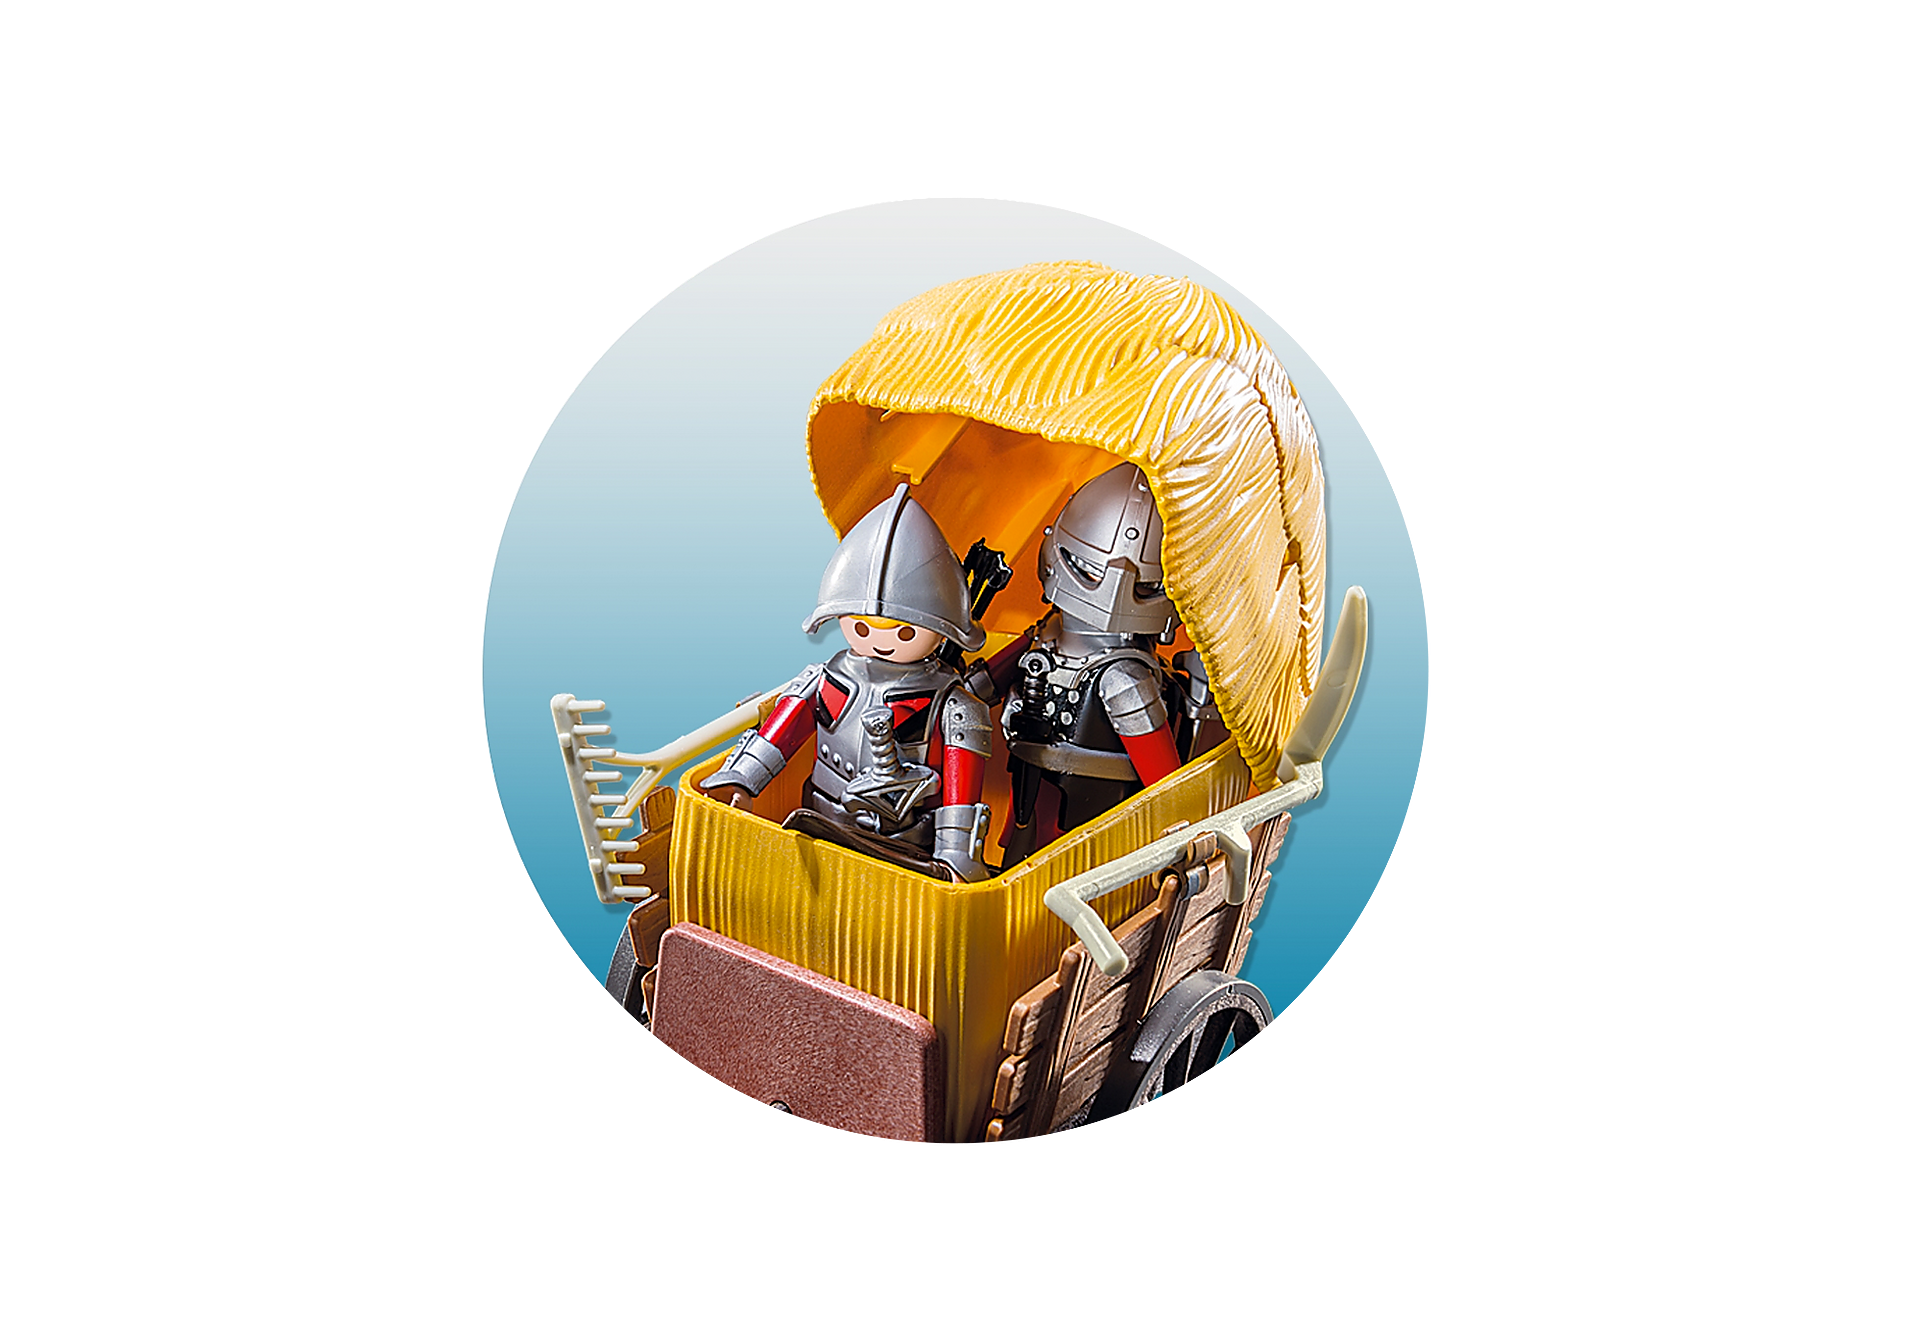 http://media.playmobil.com/i/playmobil/6005_product_extra1/Hawk Knight`s with Camouflage Wagon